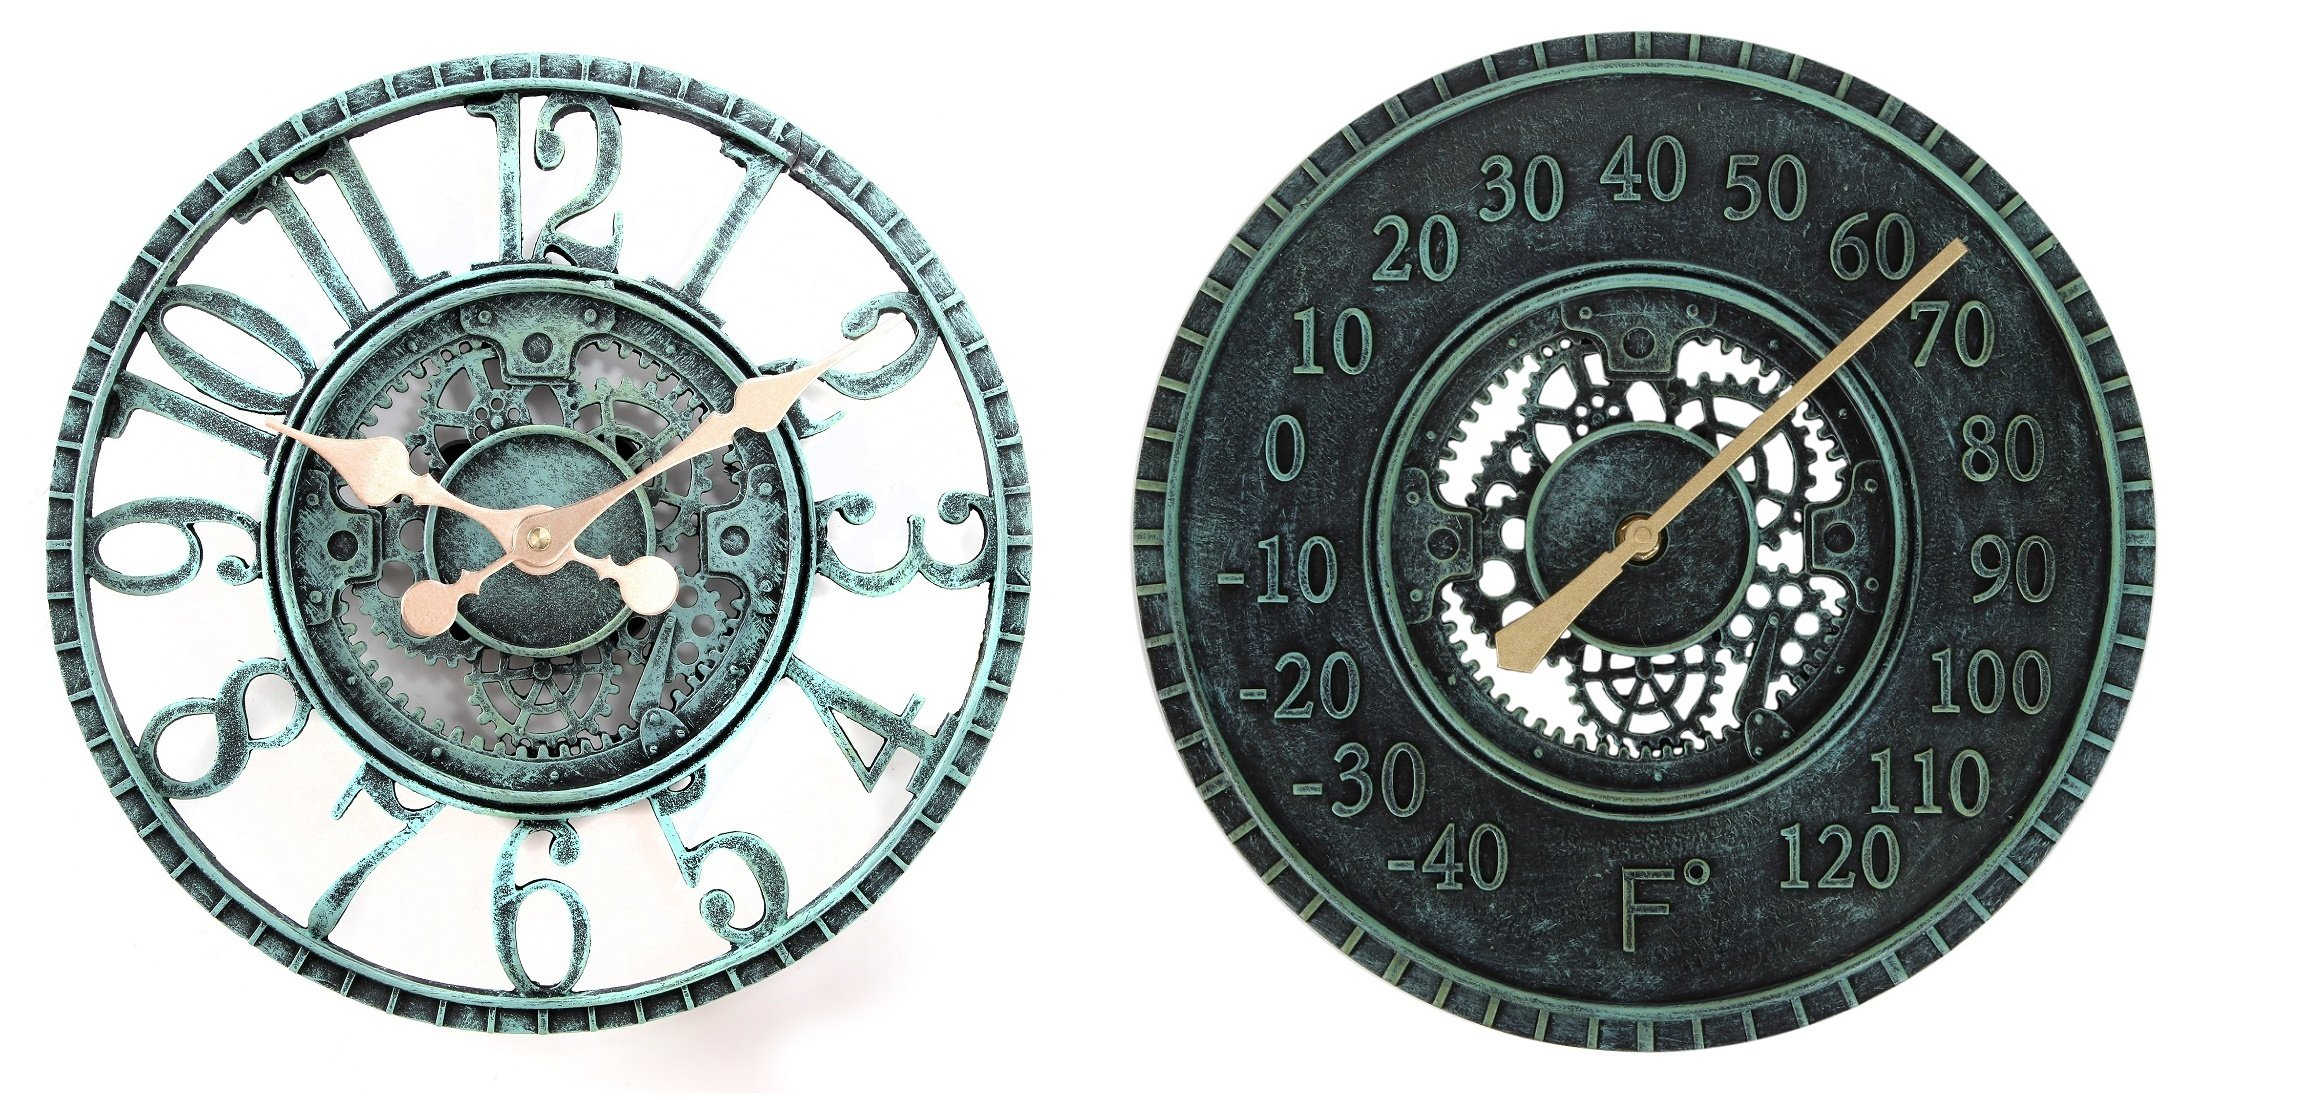 Lily's Home Hanging Wall Clock and Thermometer Set, Steampunk Gear and Cog Design with a Pewter Finish, Ideal for Indoor or Outdoor Use, Poly-Resin (12 Inches and 13 Inches Diameter)